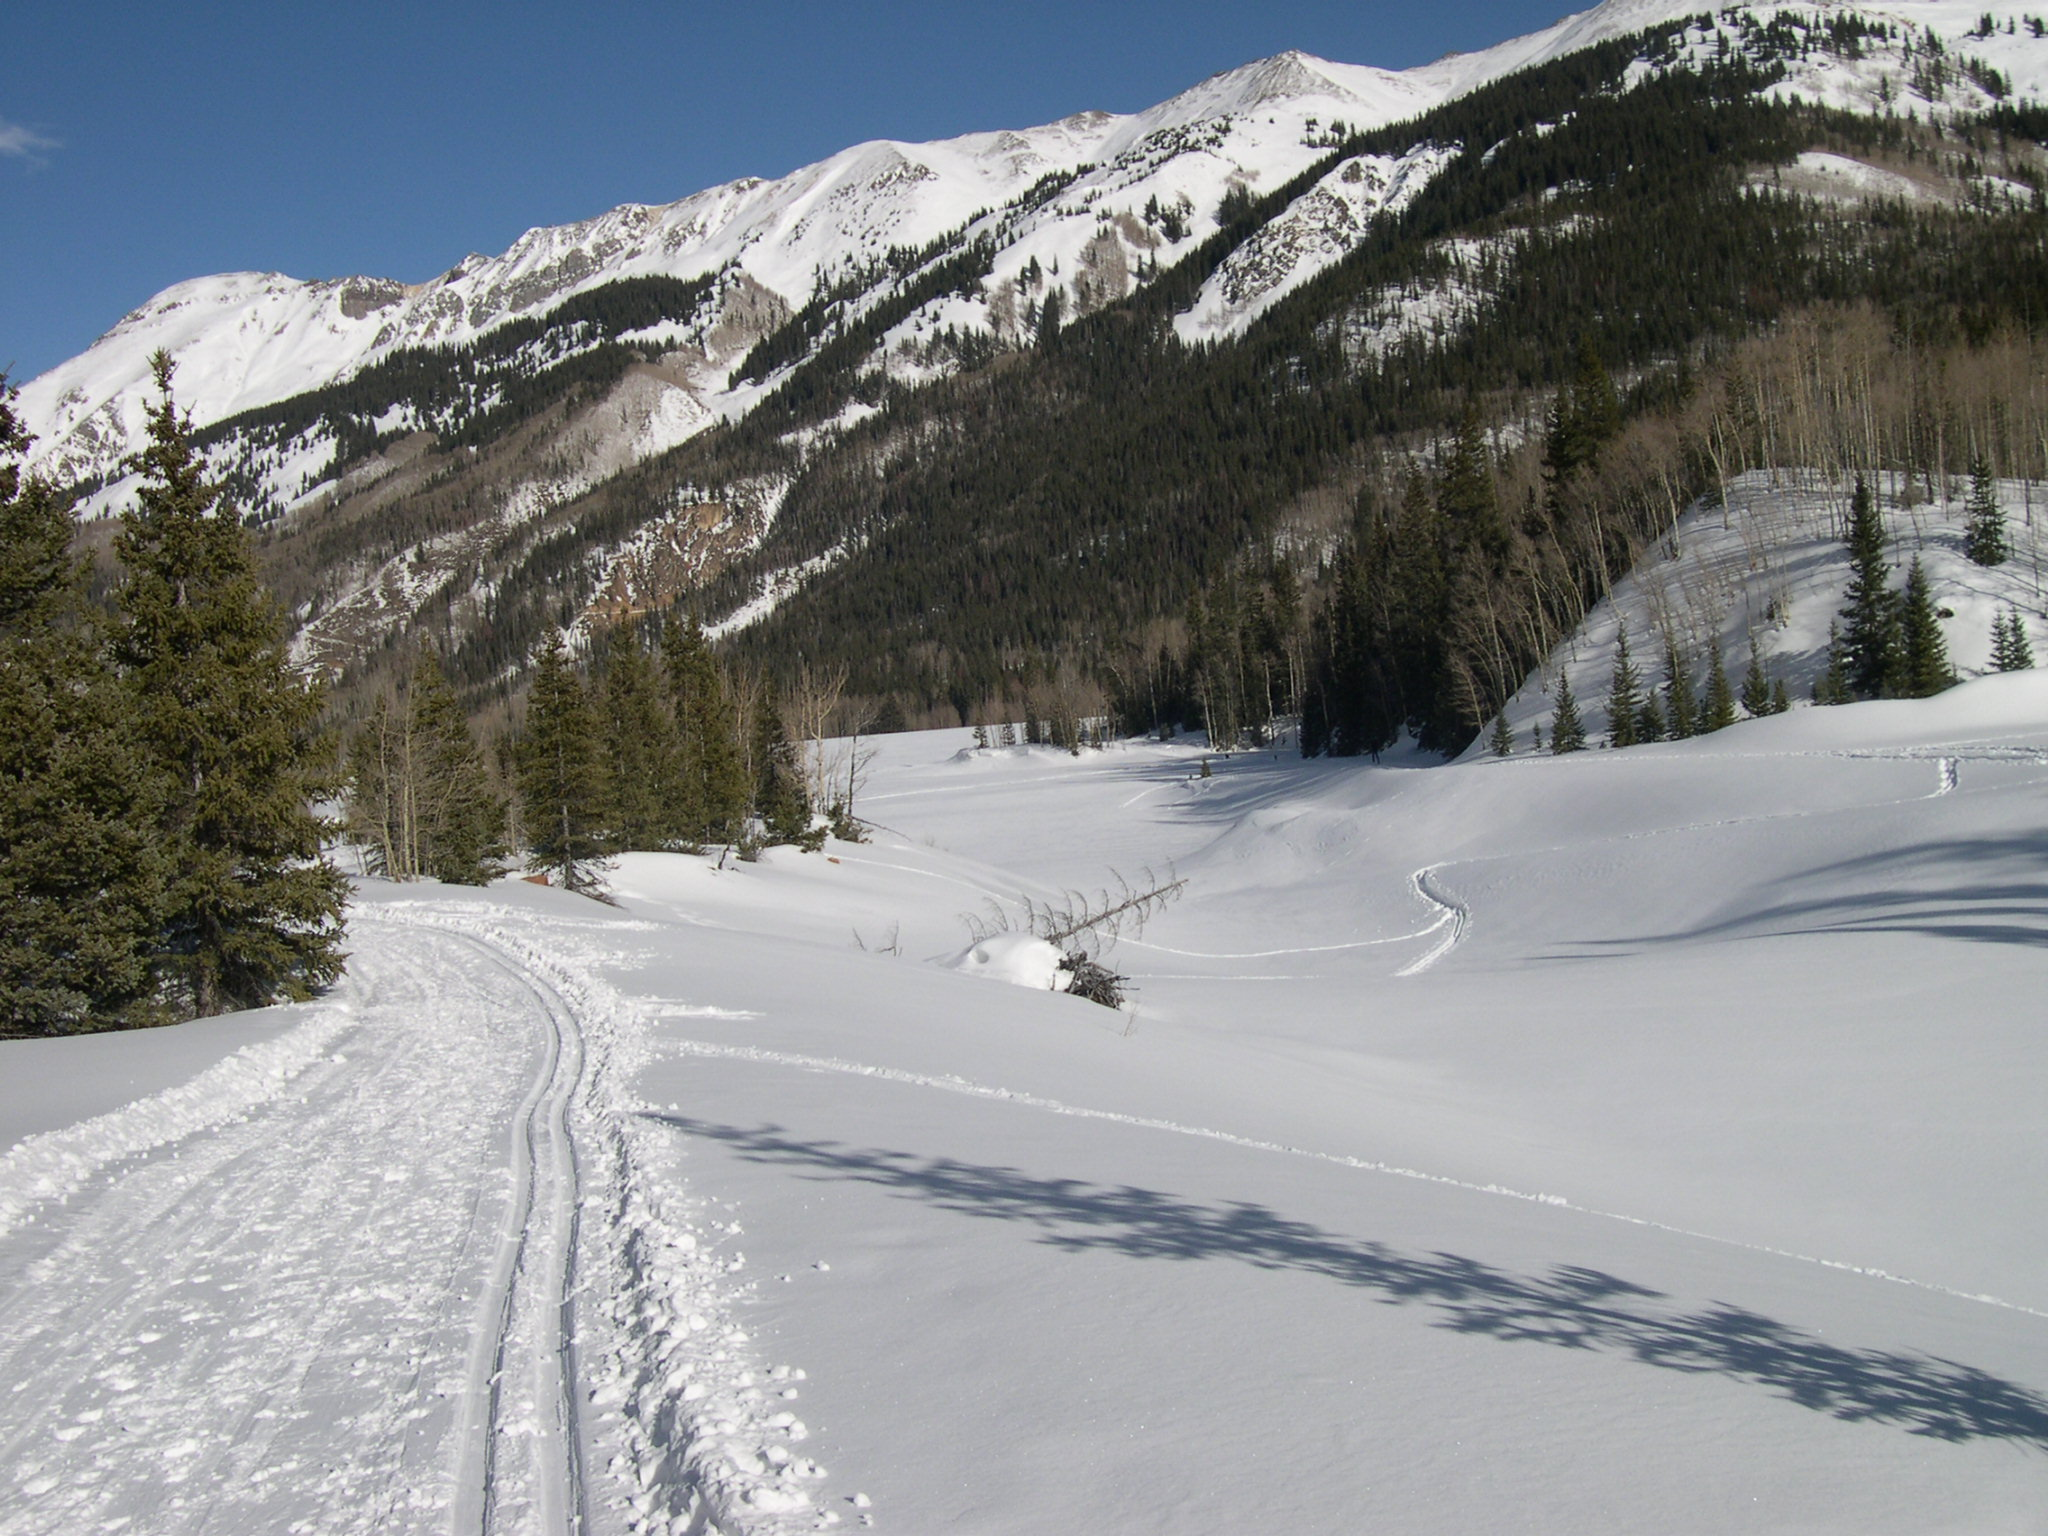 groomed trails